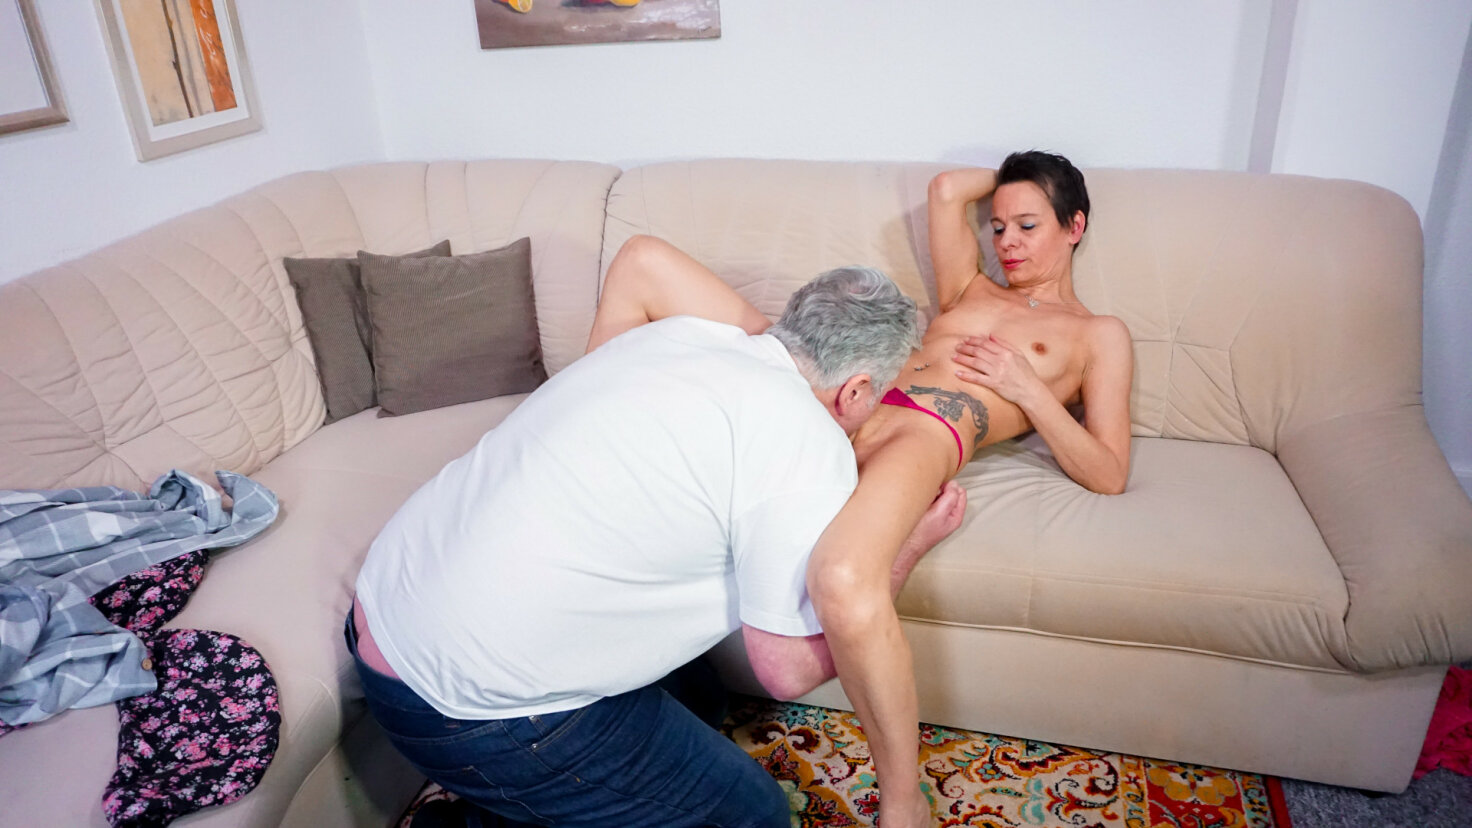 Amateur German housewife Sabrina enjoys a dirty mature fuck session